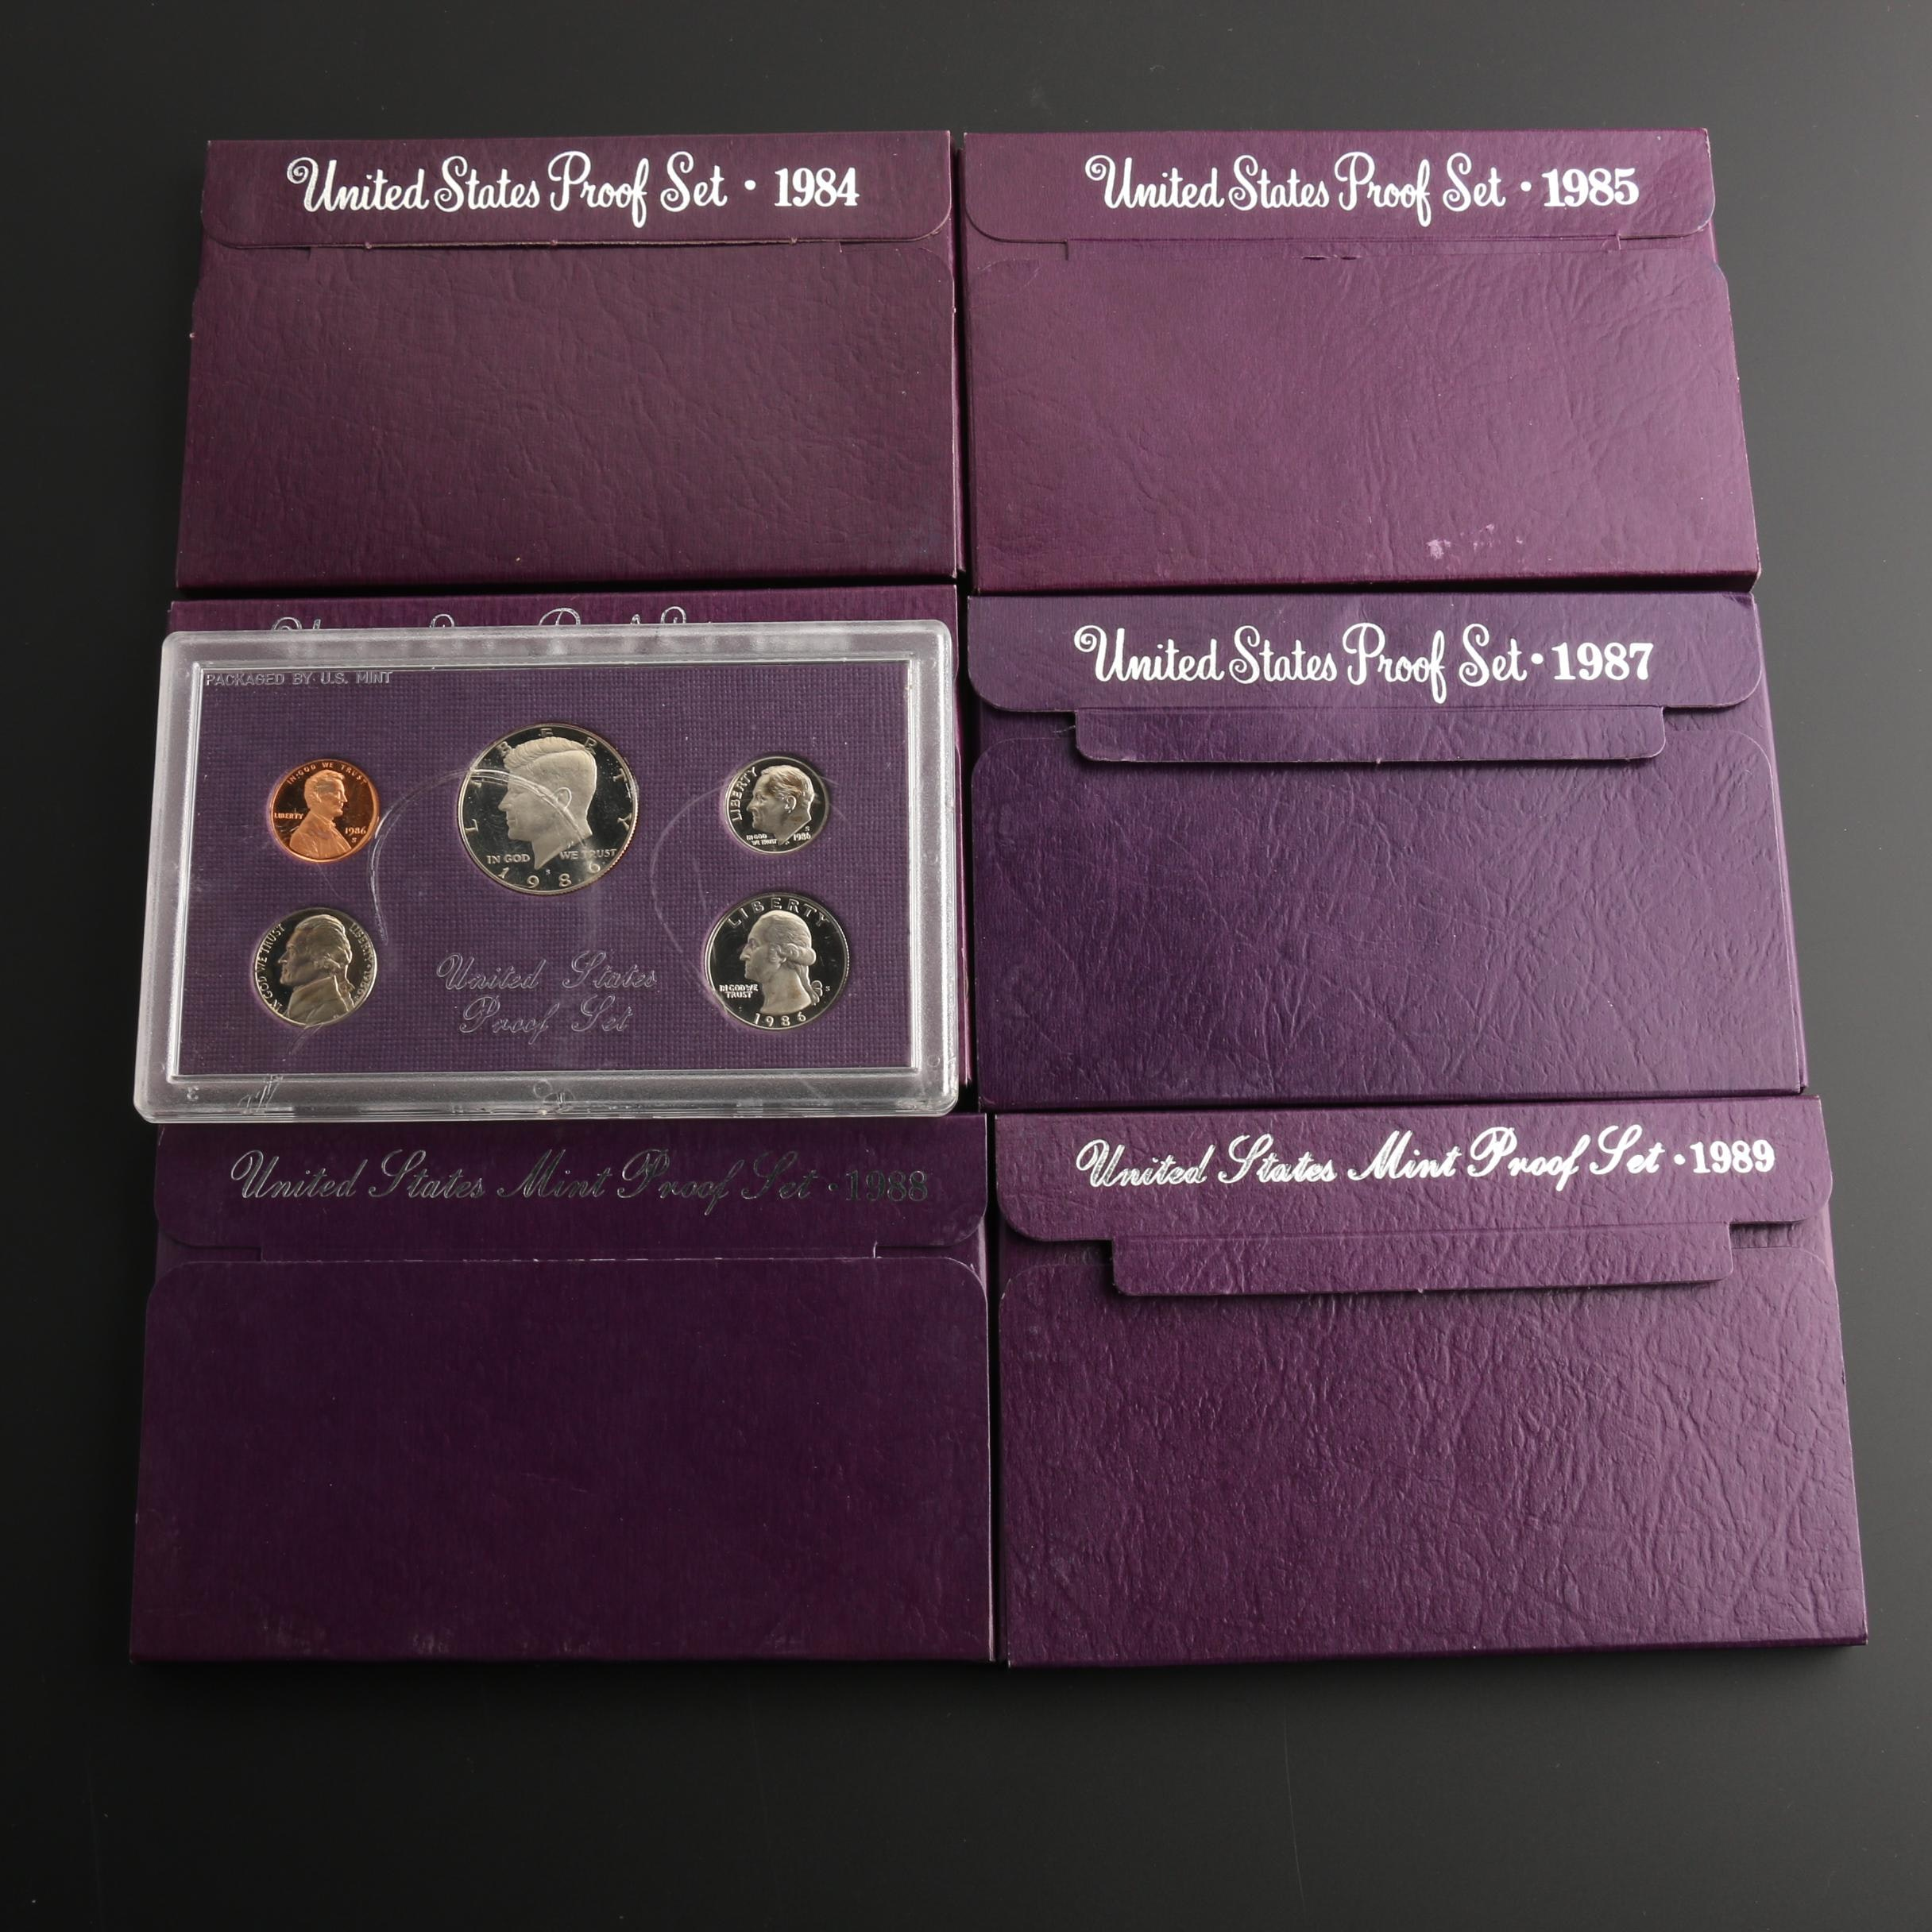 Group of Seven U.S. Mint Proof Sets, 1984 to 1989